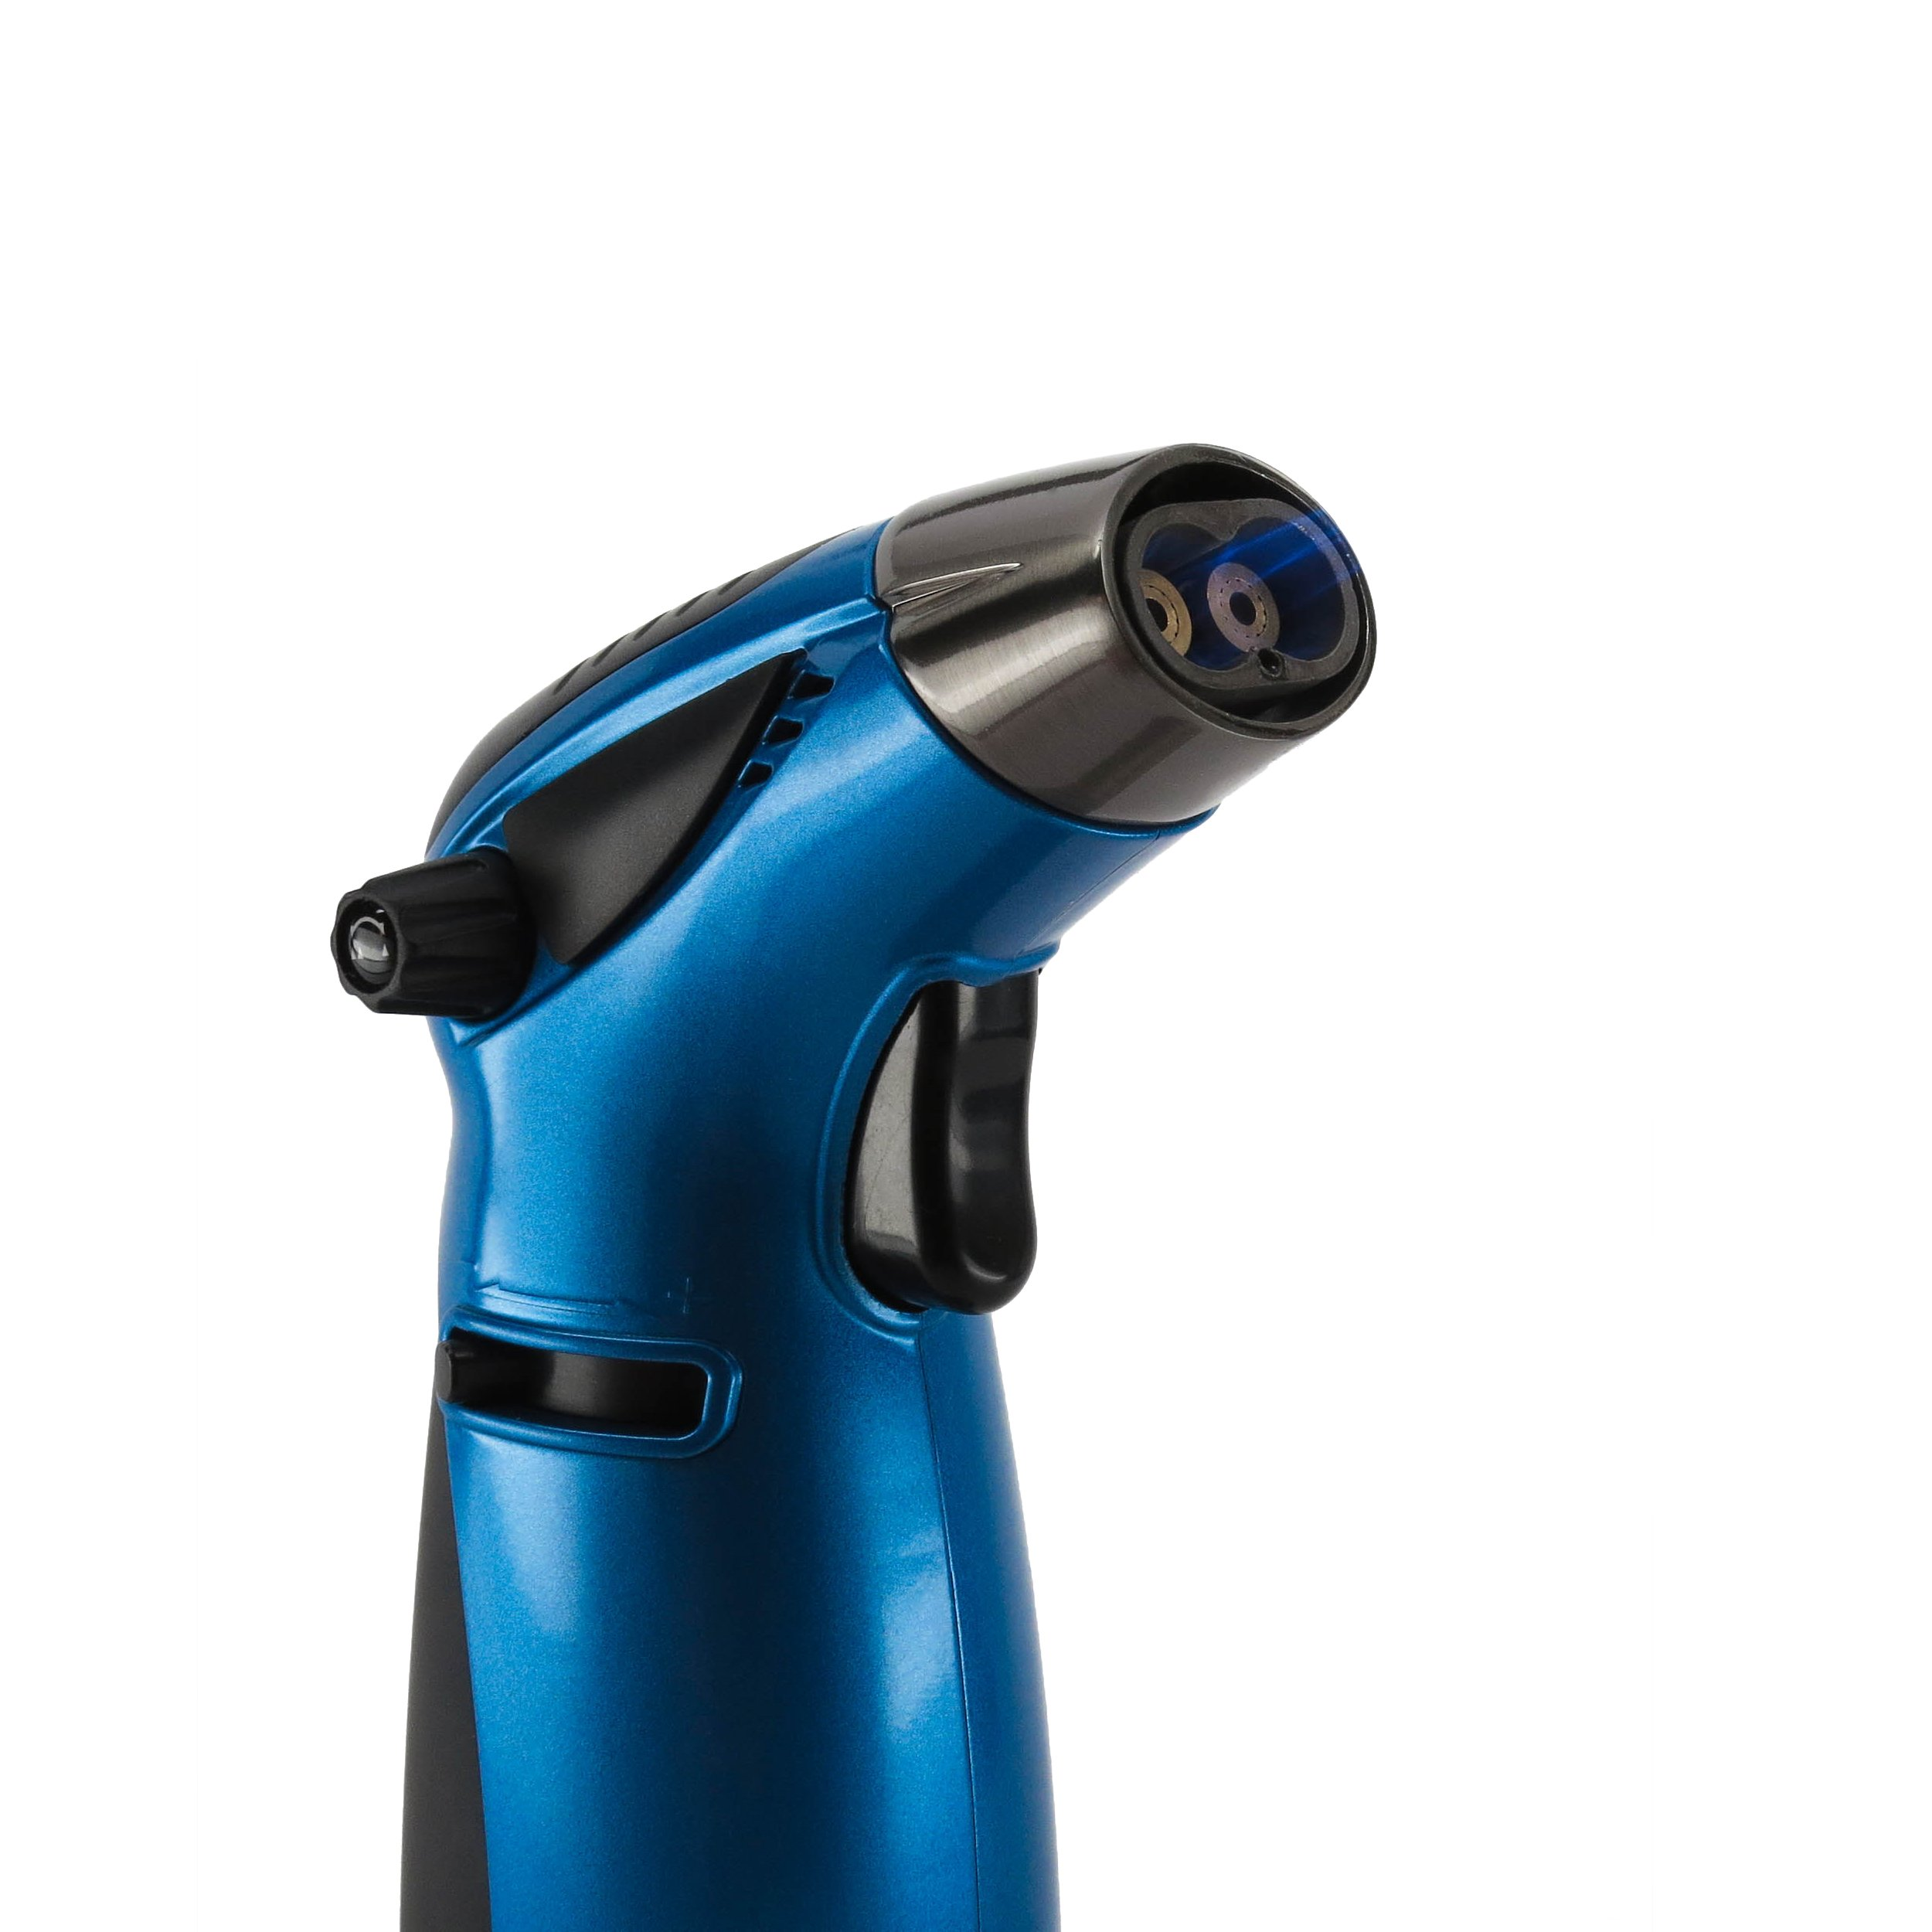 Zico MT39 Table Top Torch Lighter (Blue) with Leaf Lock Gear Spill Proof Pouch by Zico, Leaf Lock Gear (Image #2)